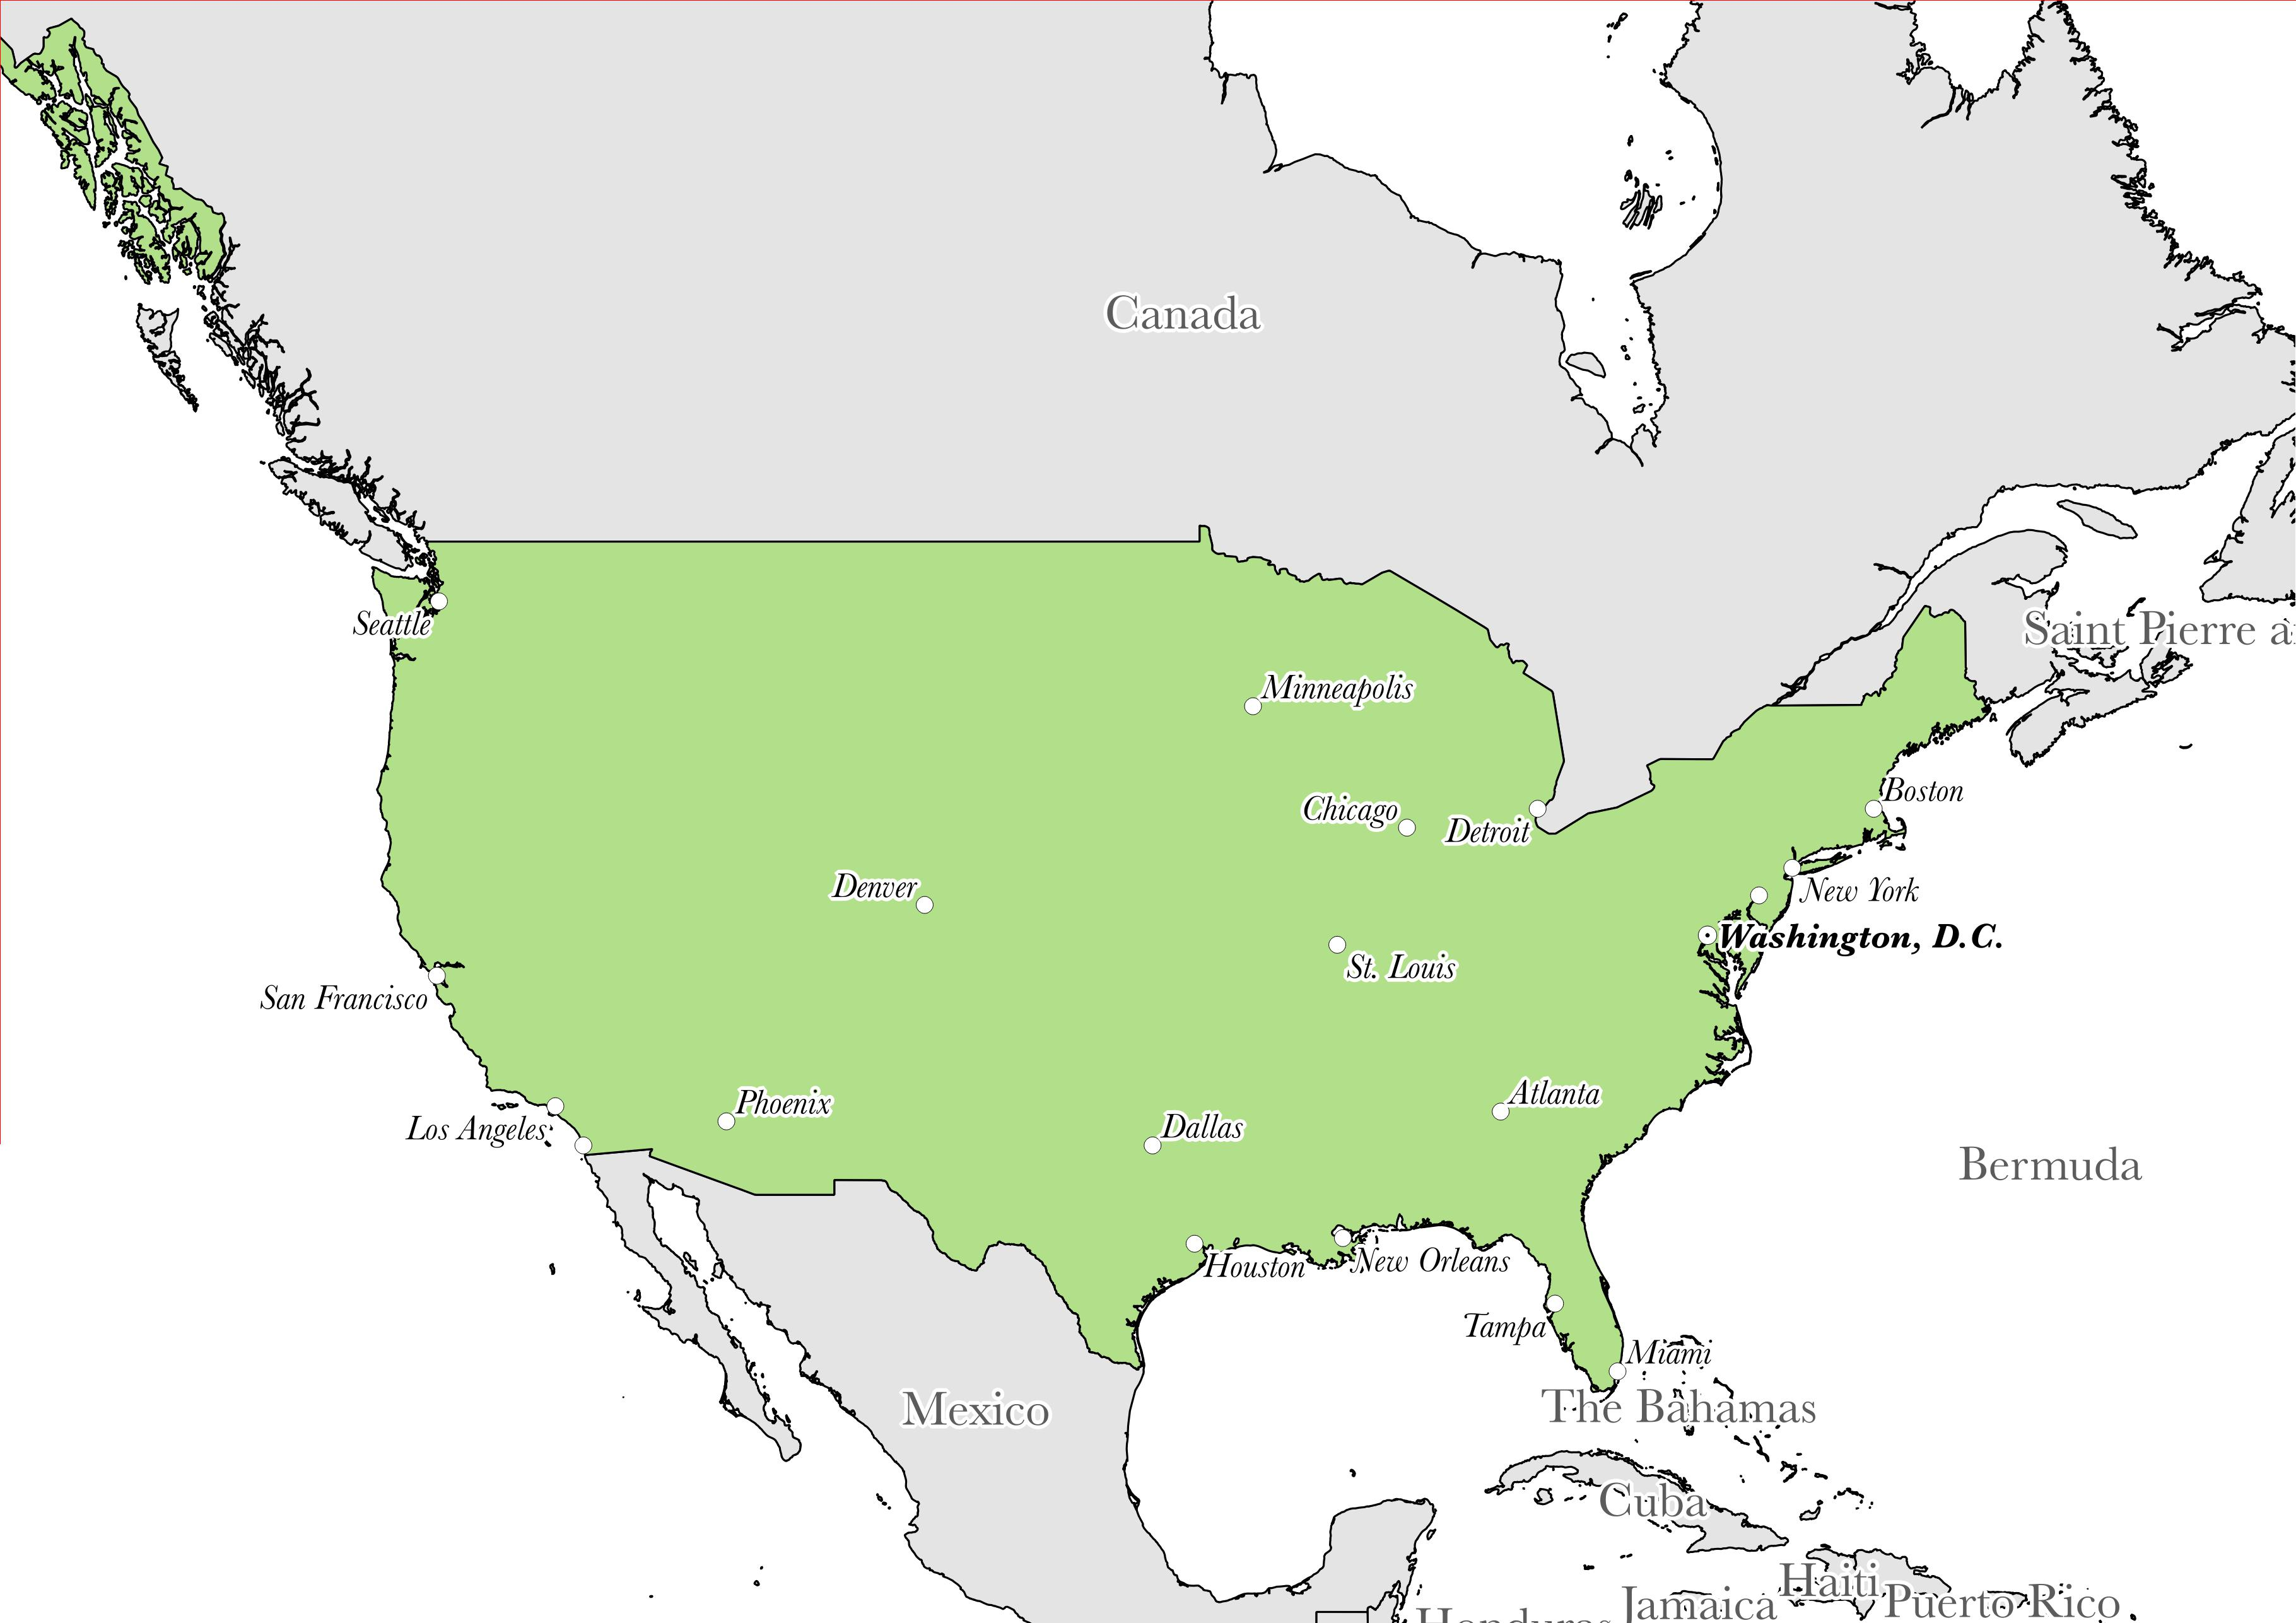 Map showing the location of United States